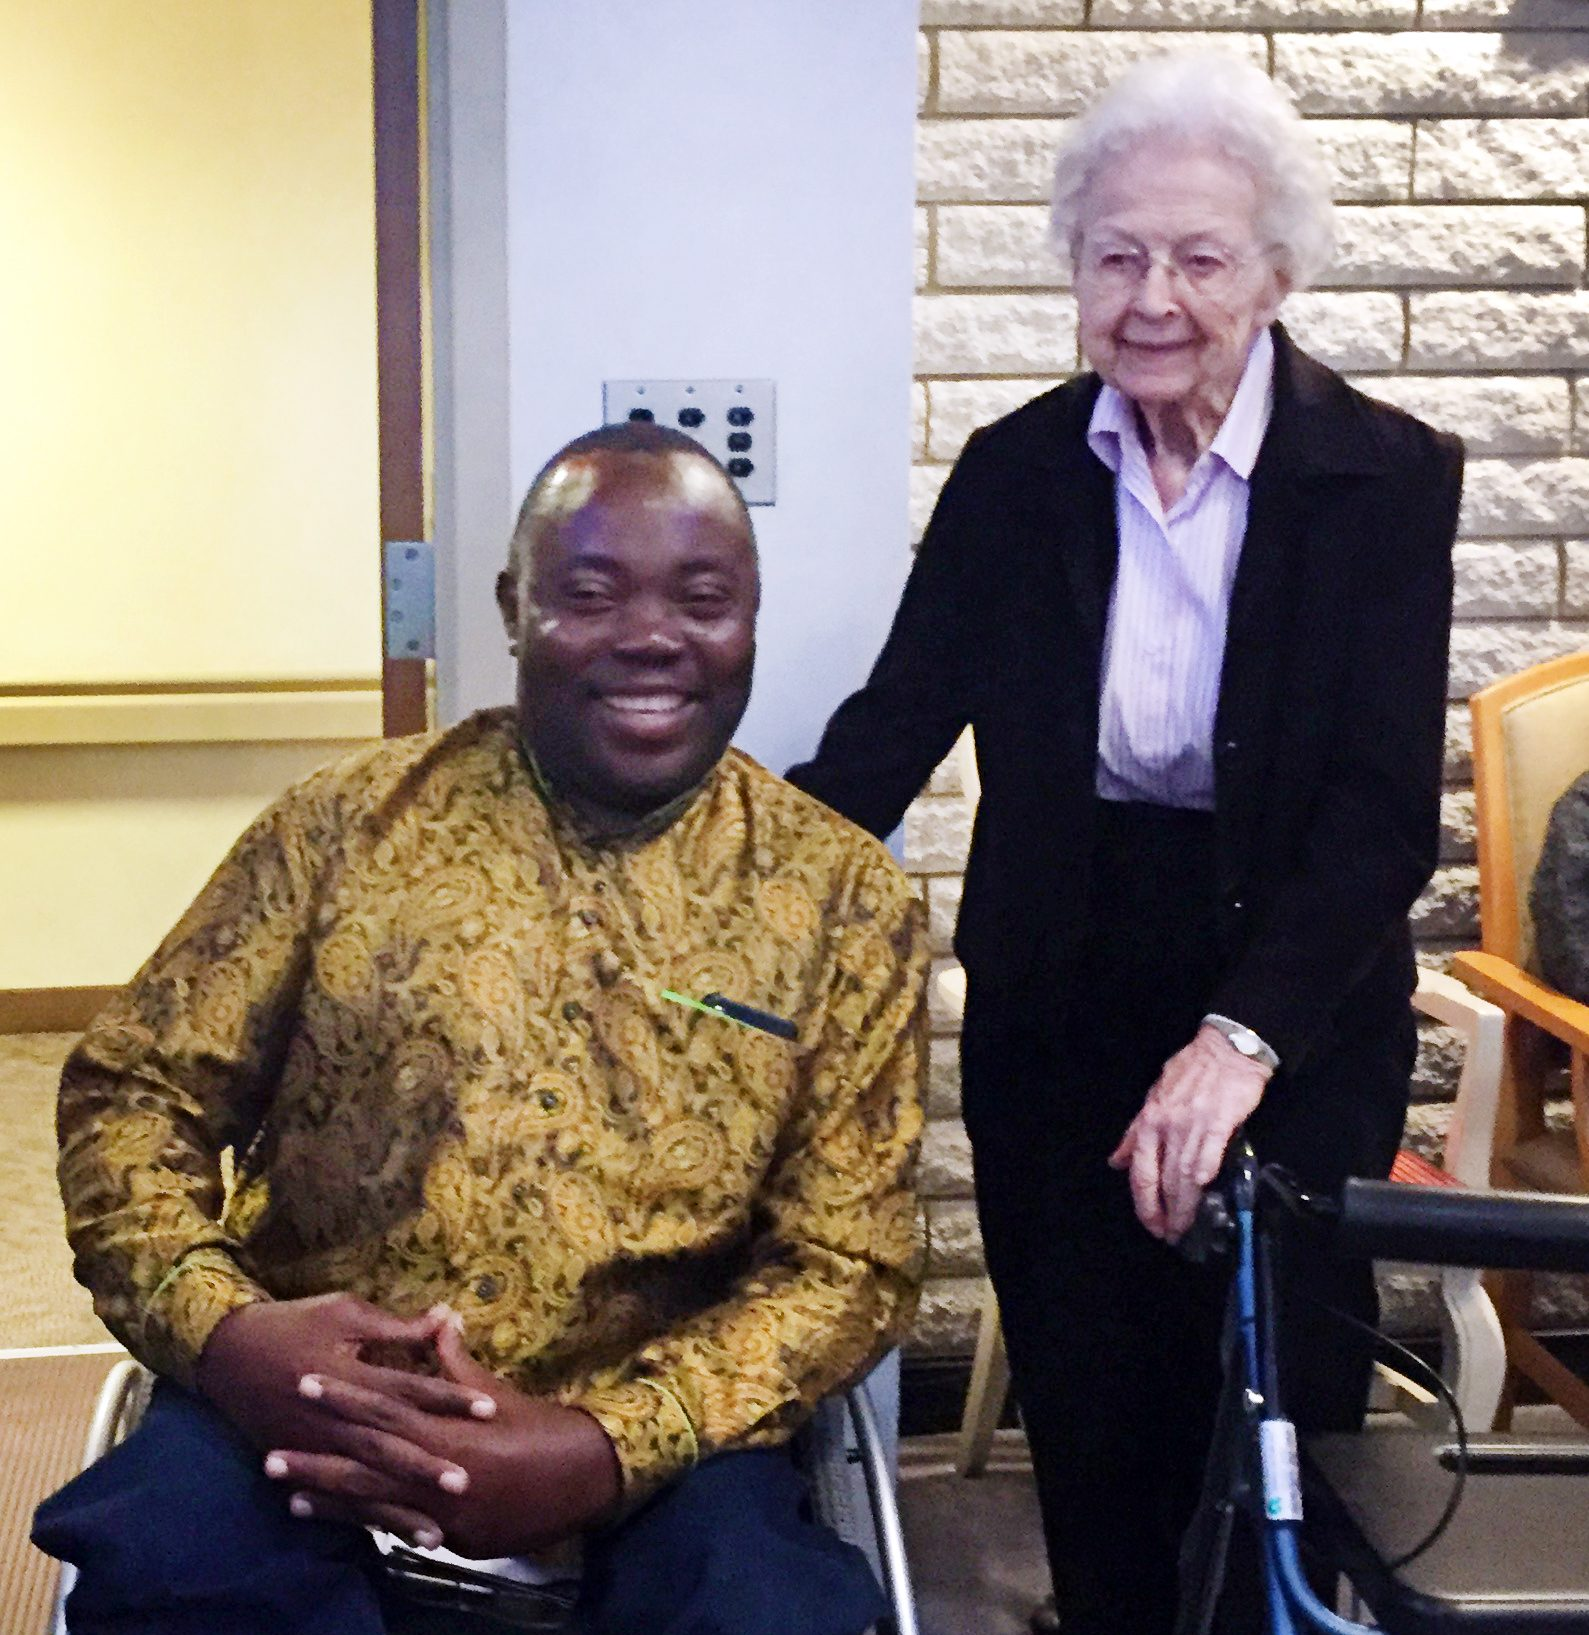 Sister Aquinas Weber and Clement Chiwaya